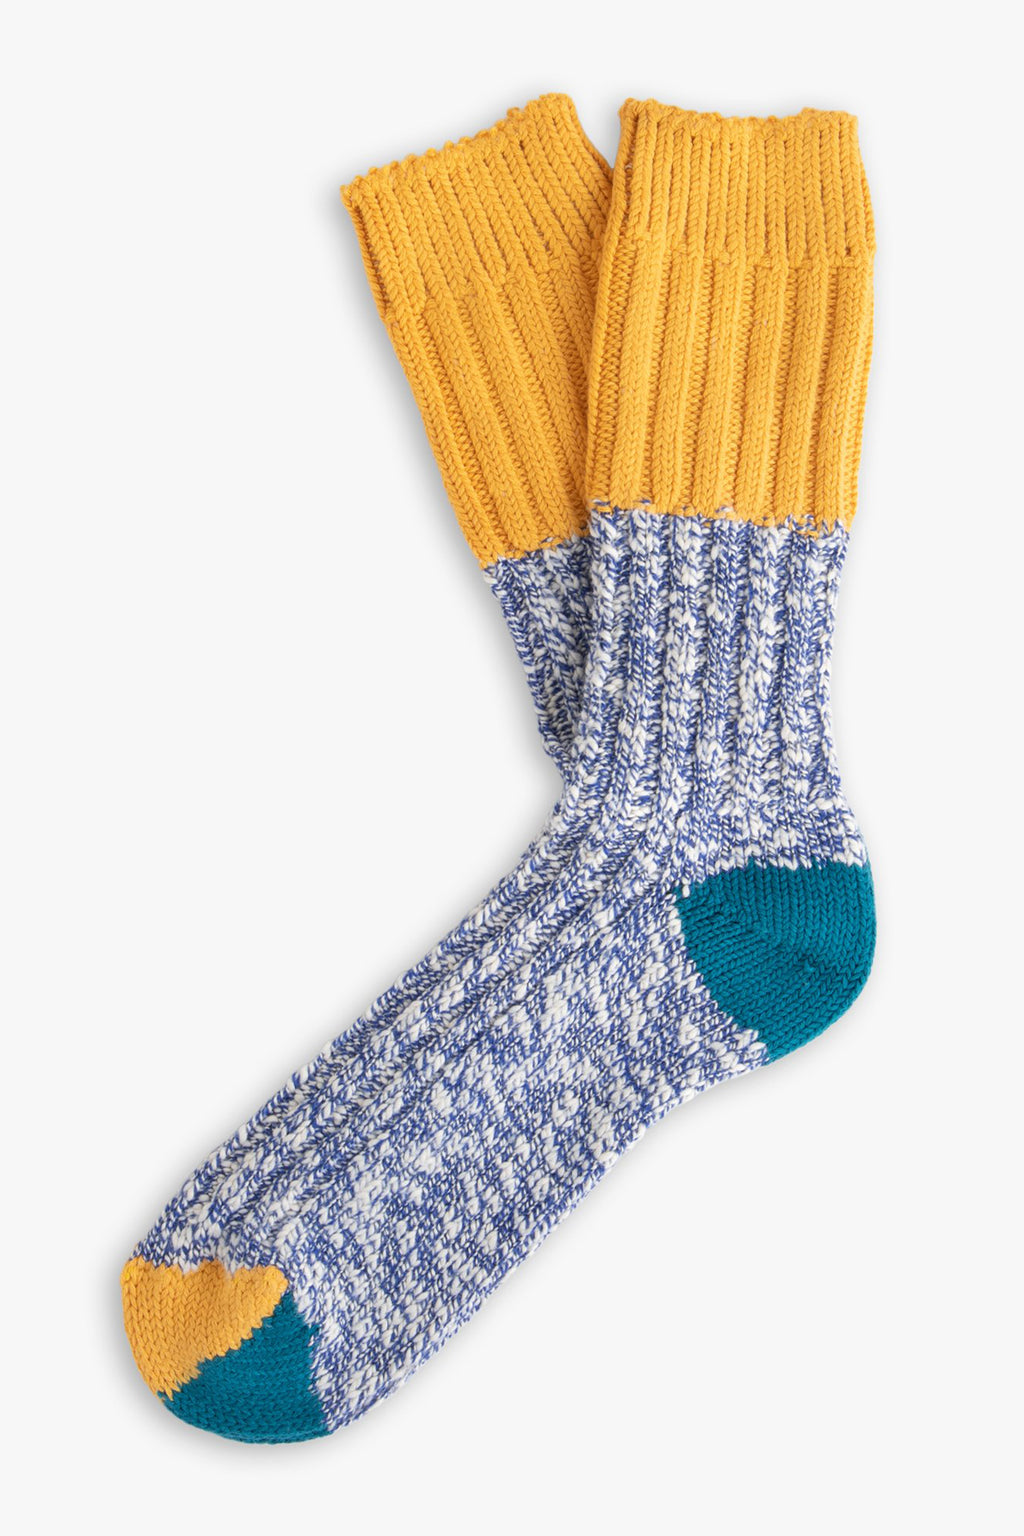 Thunders Love Mens Sid Socks - The Mercantile London